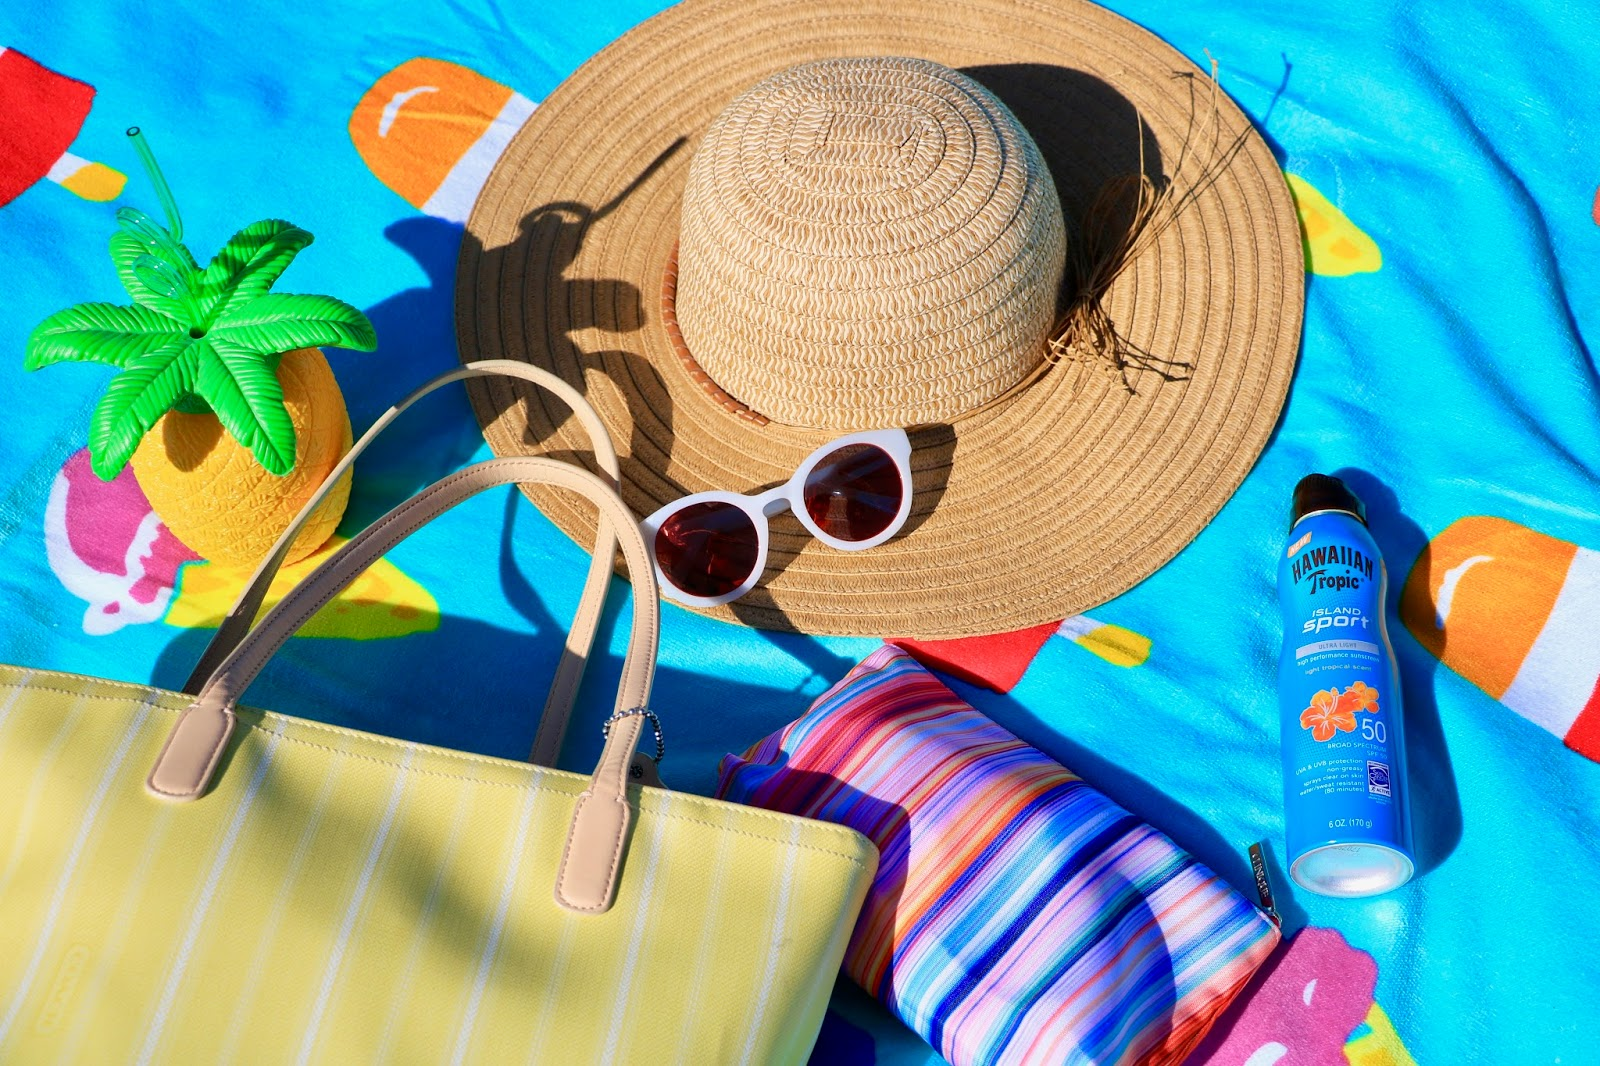 Beach towel blanket with hat, sunglasses, and sunscreen